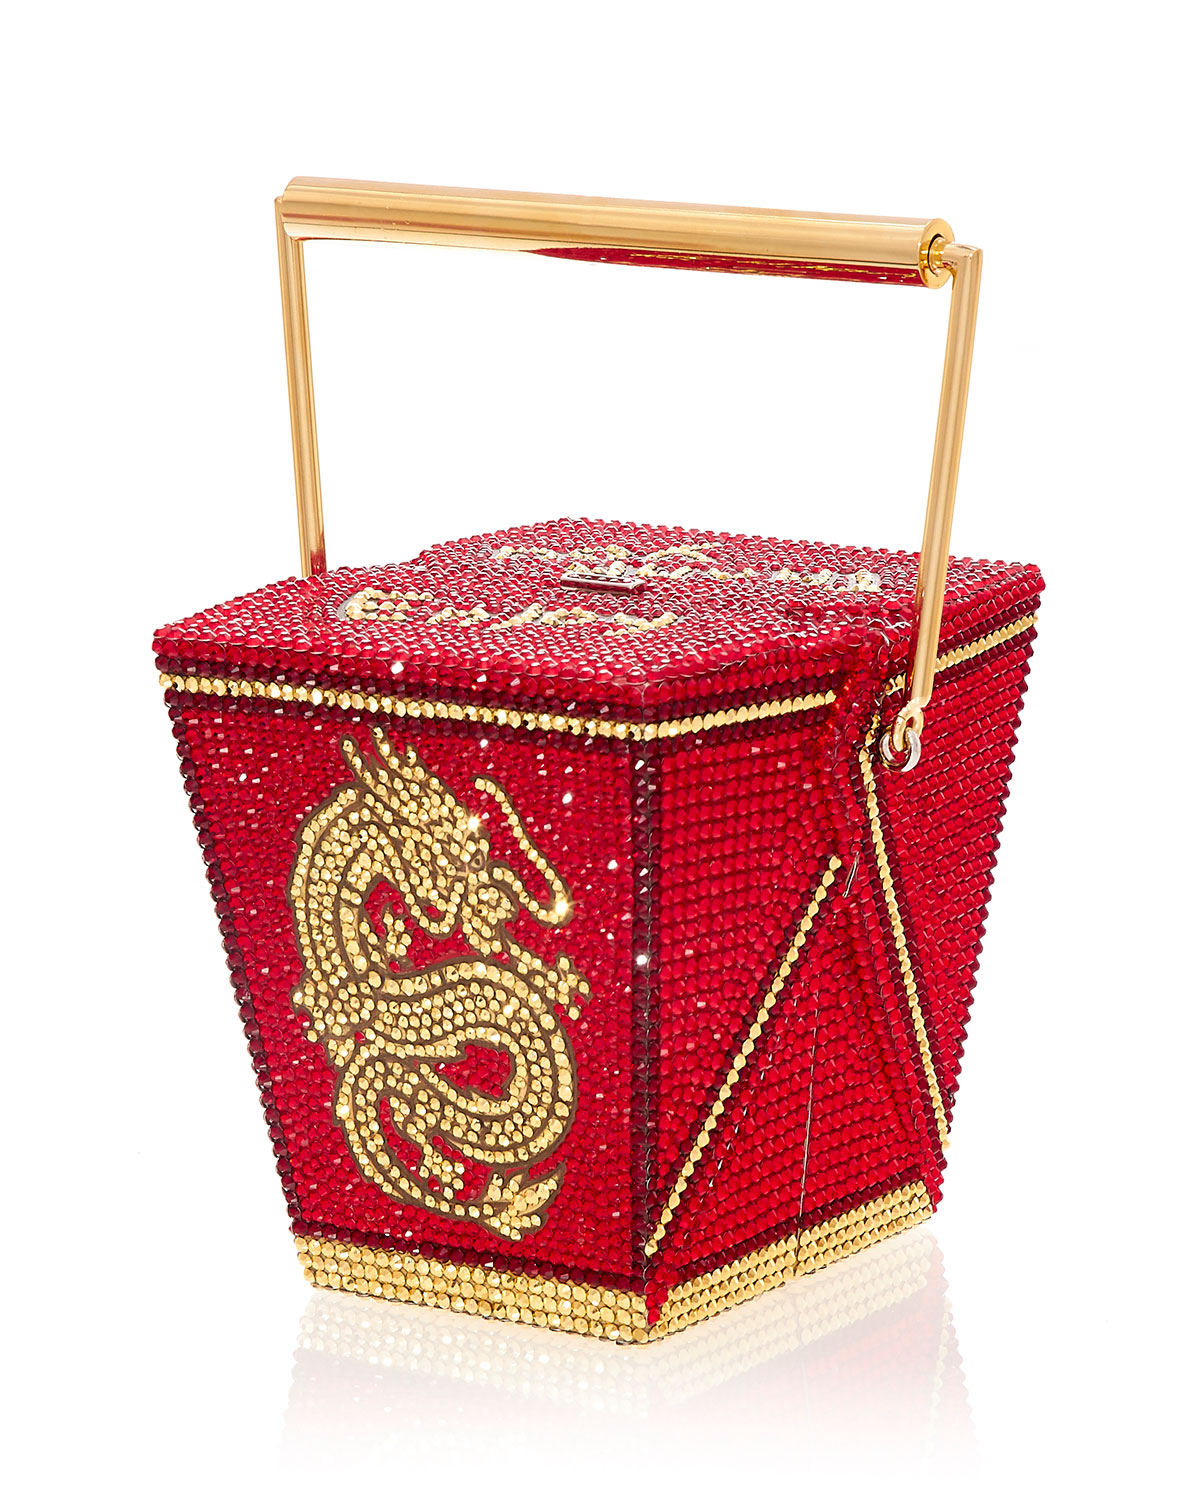 Take Out Food Golden Dragon Crystal Clutch Minaudiere, Red